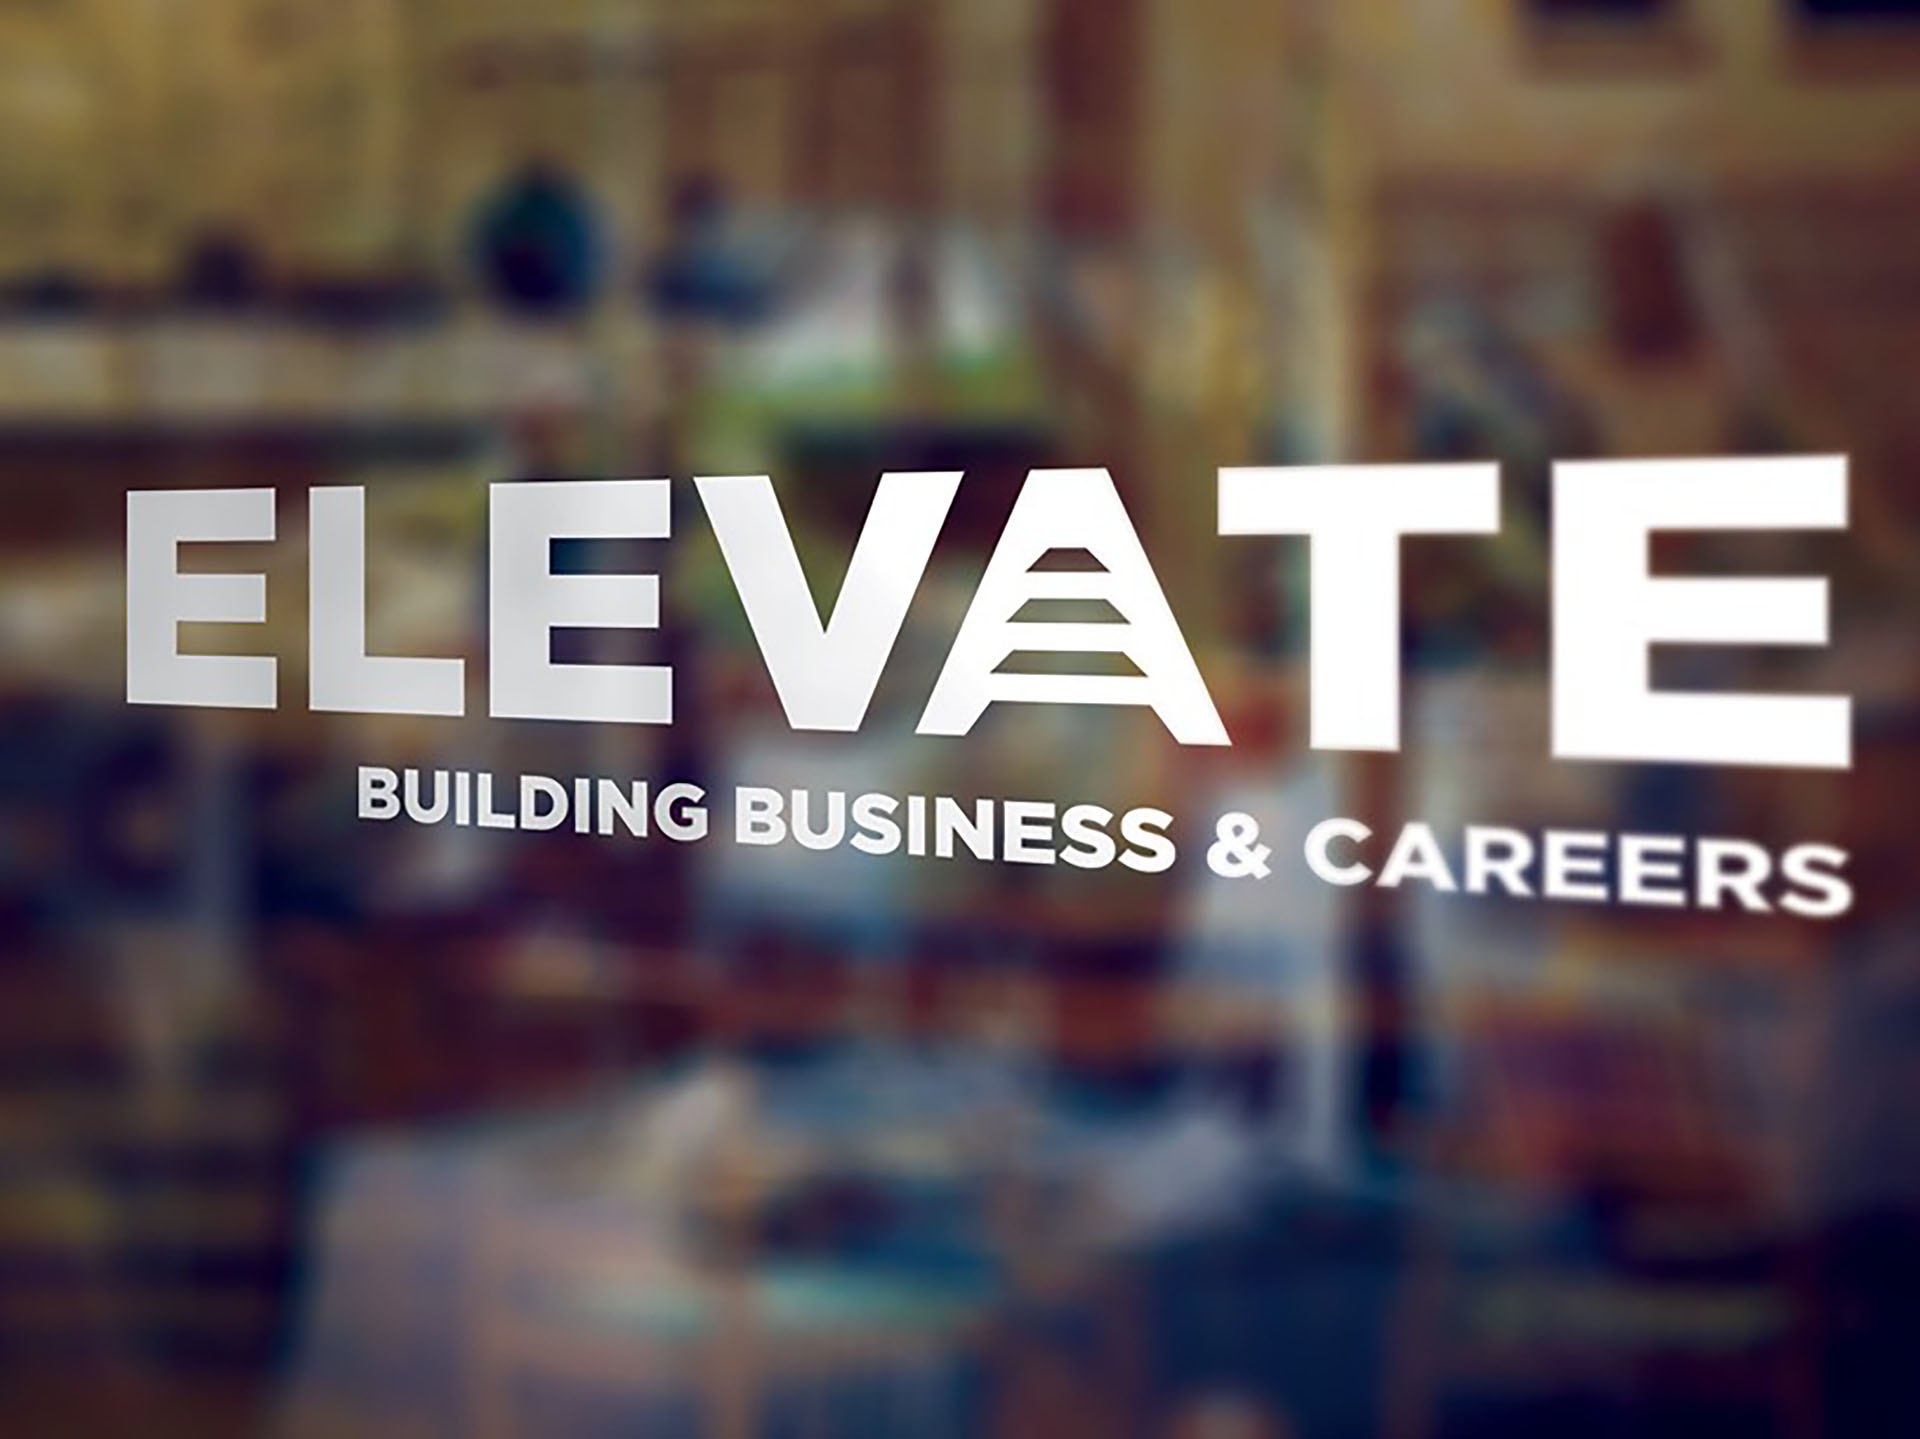 Elevate survey collecting input on workforce